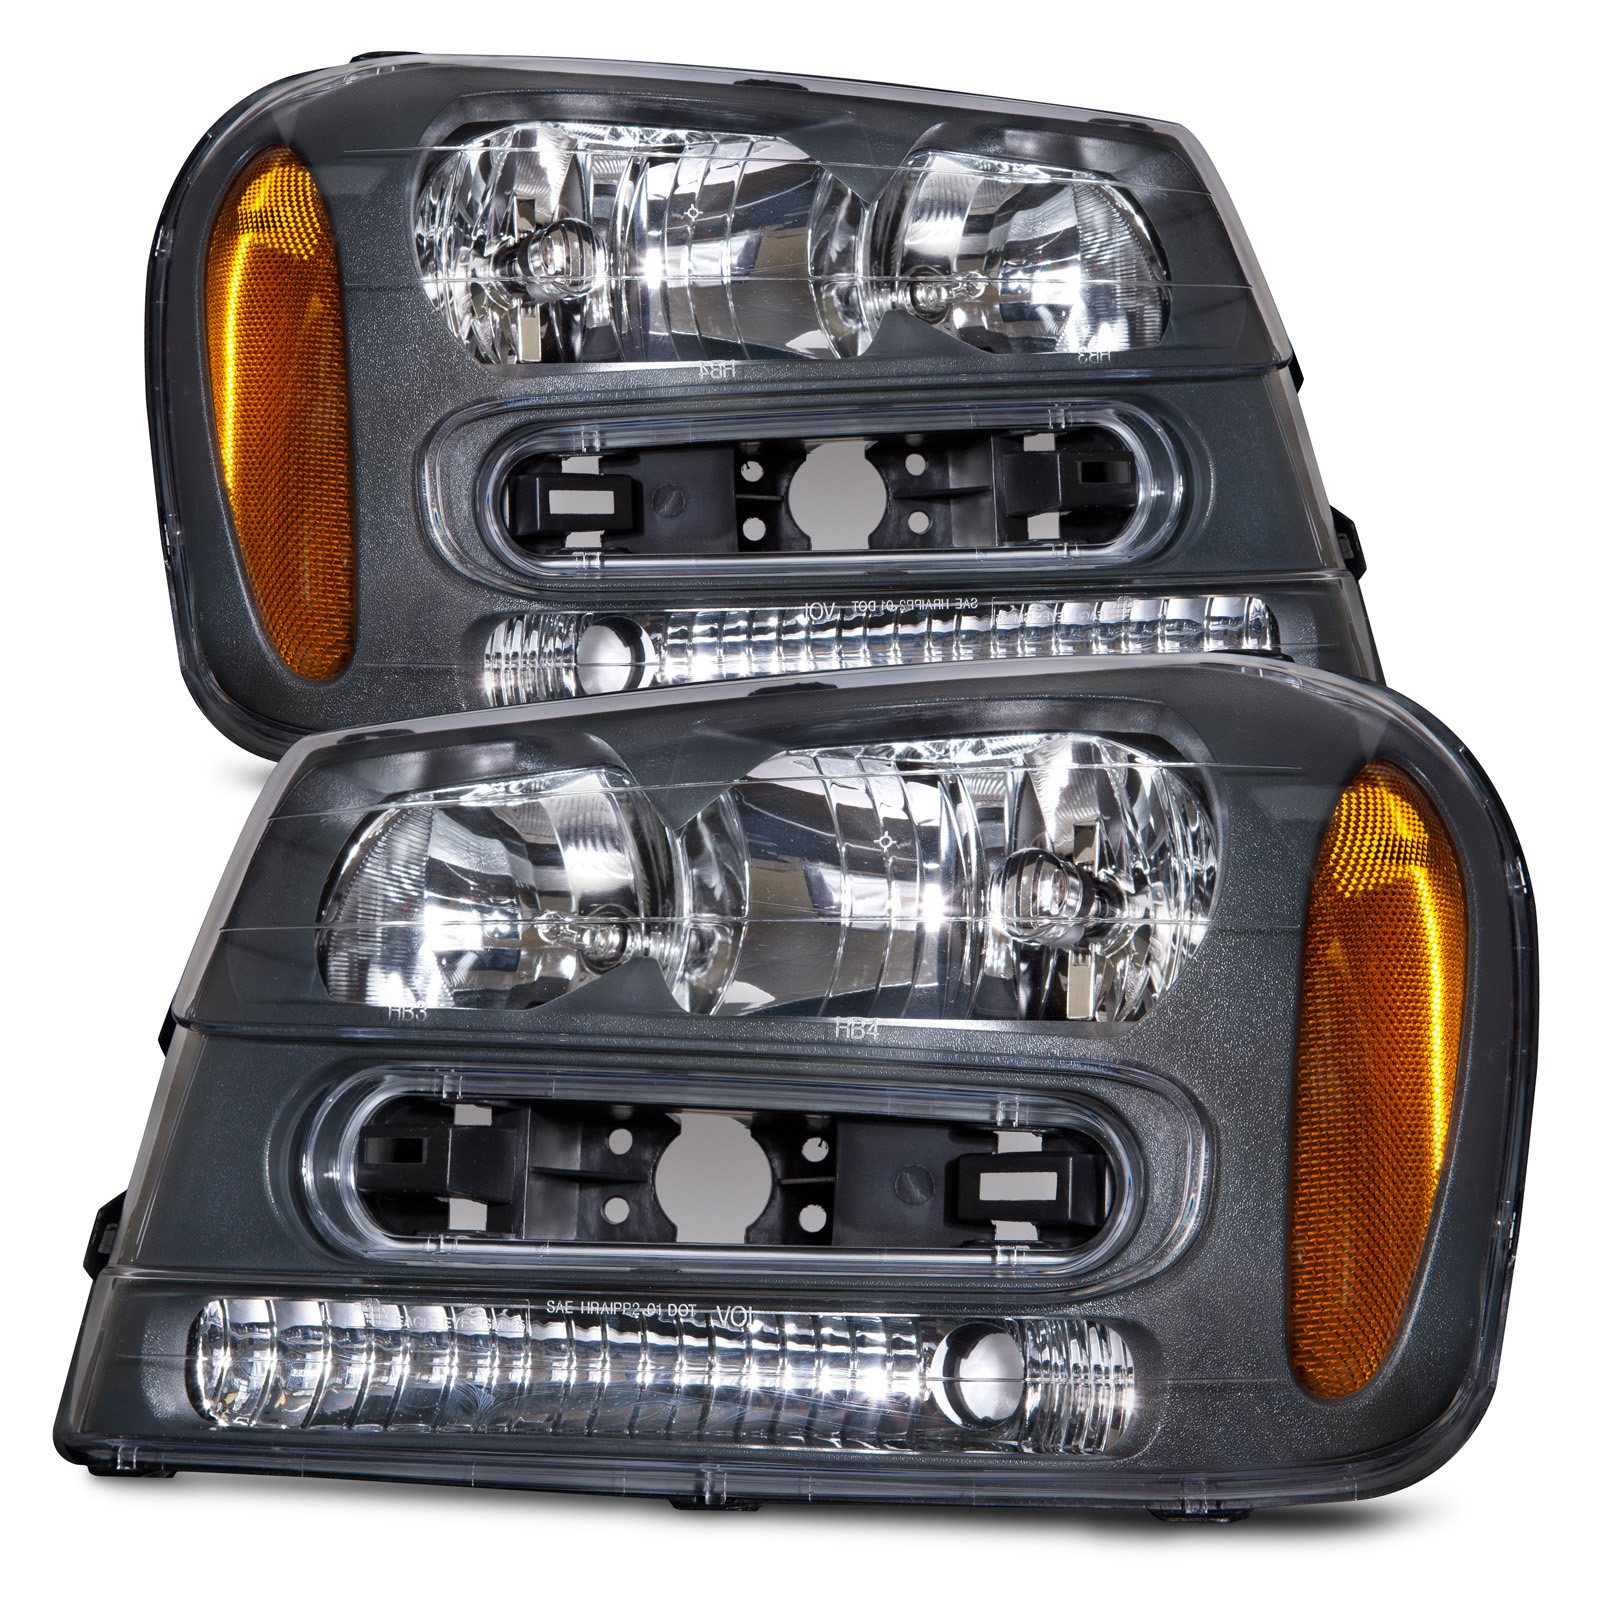 Details About Headlights Set Left Right Fits 02 09 Chevrolet Trailblazer Lt Ls Ss